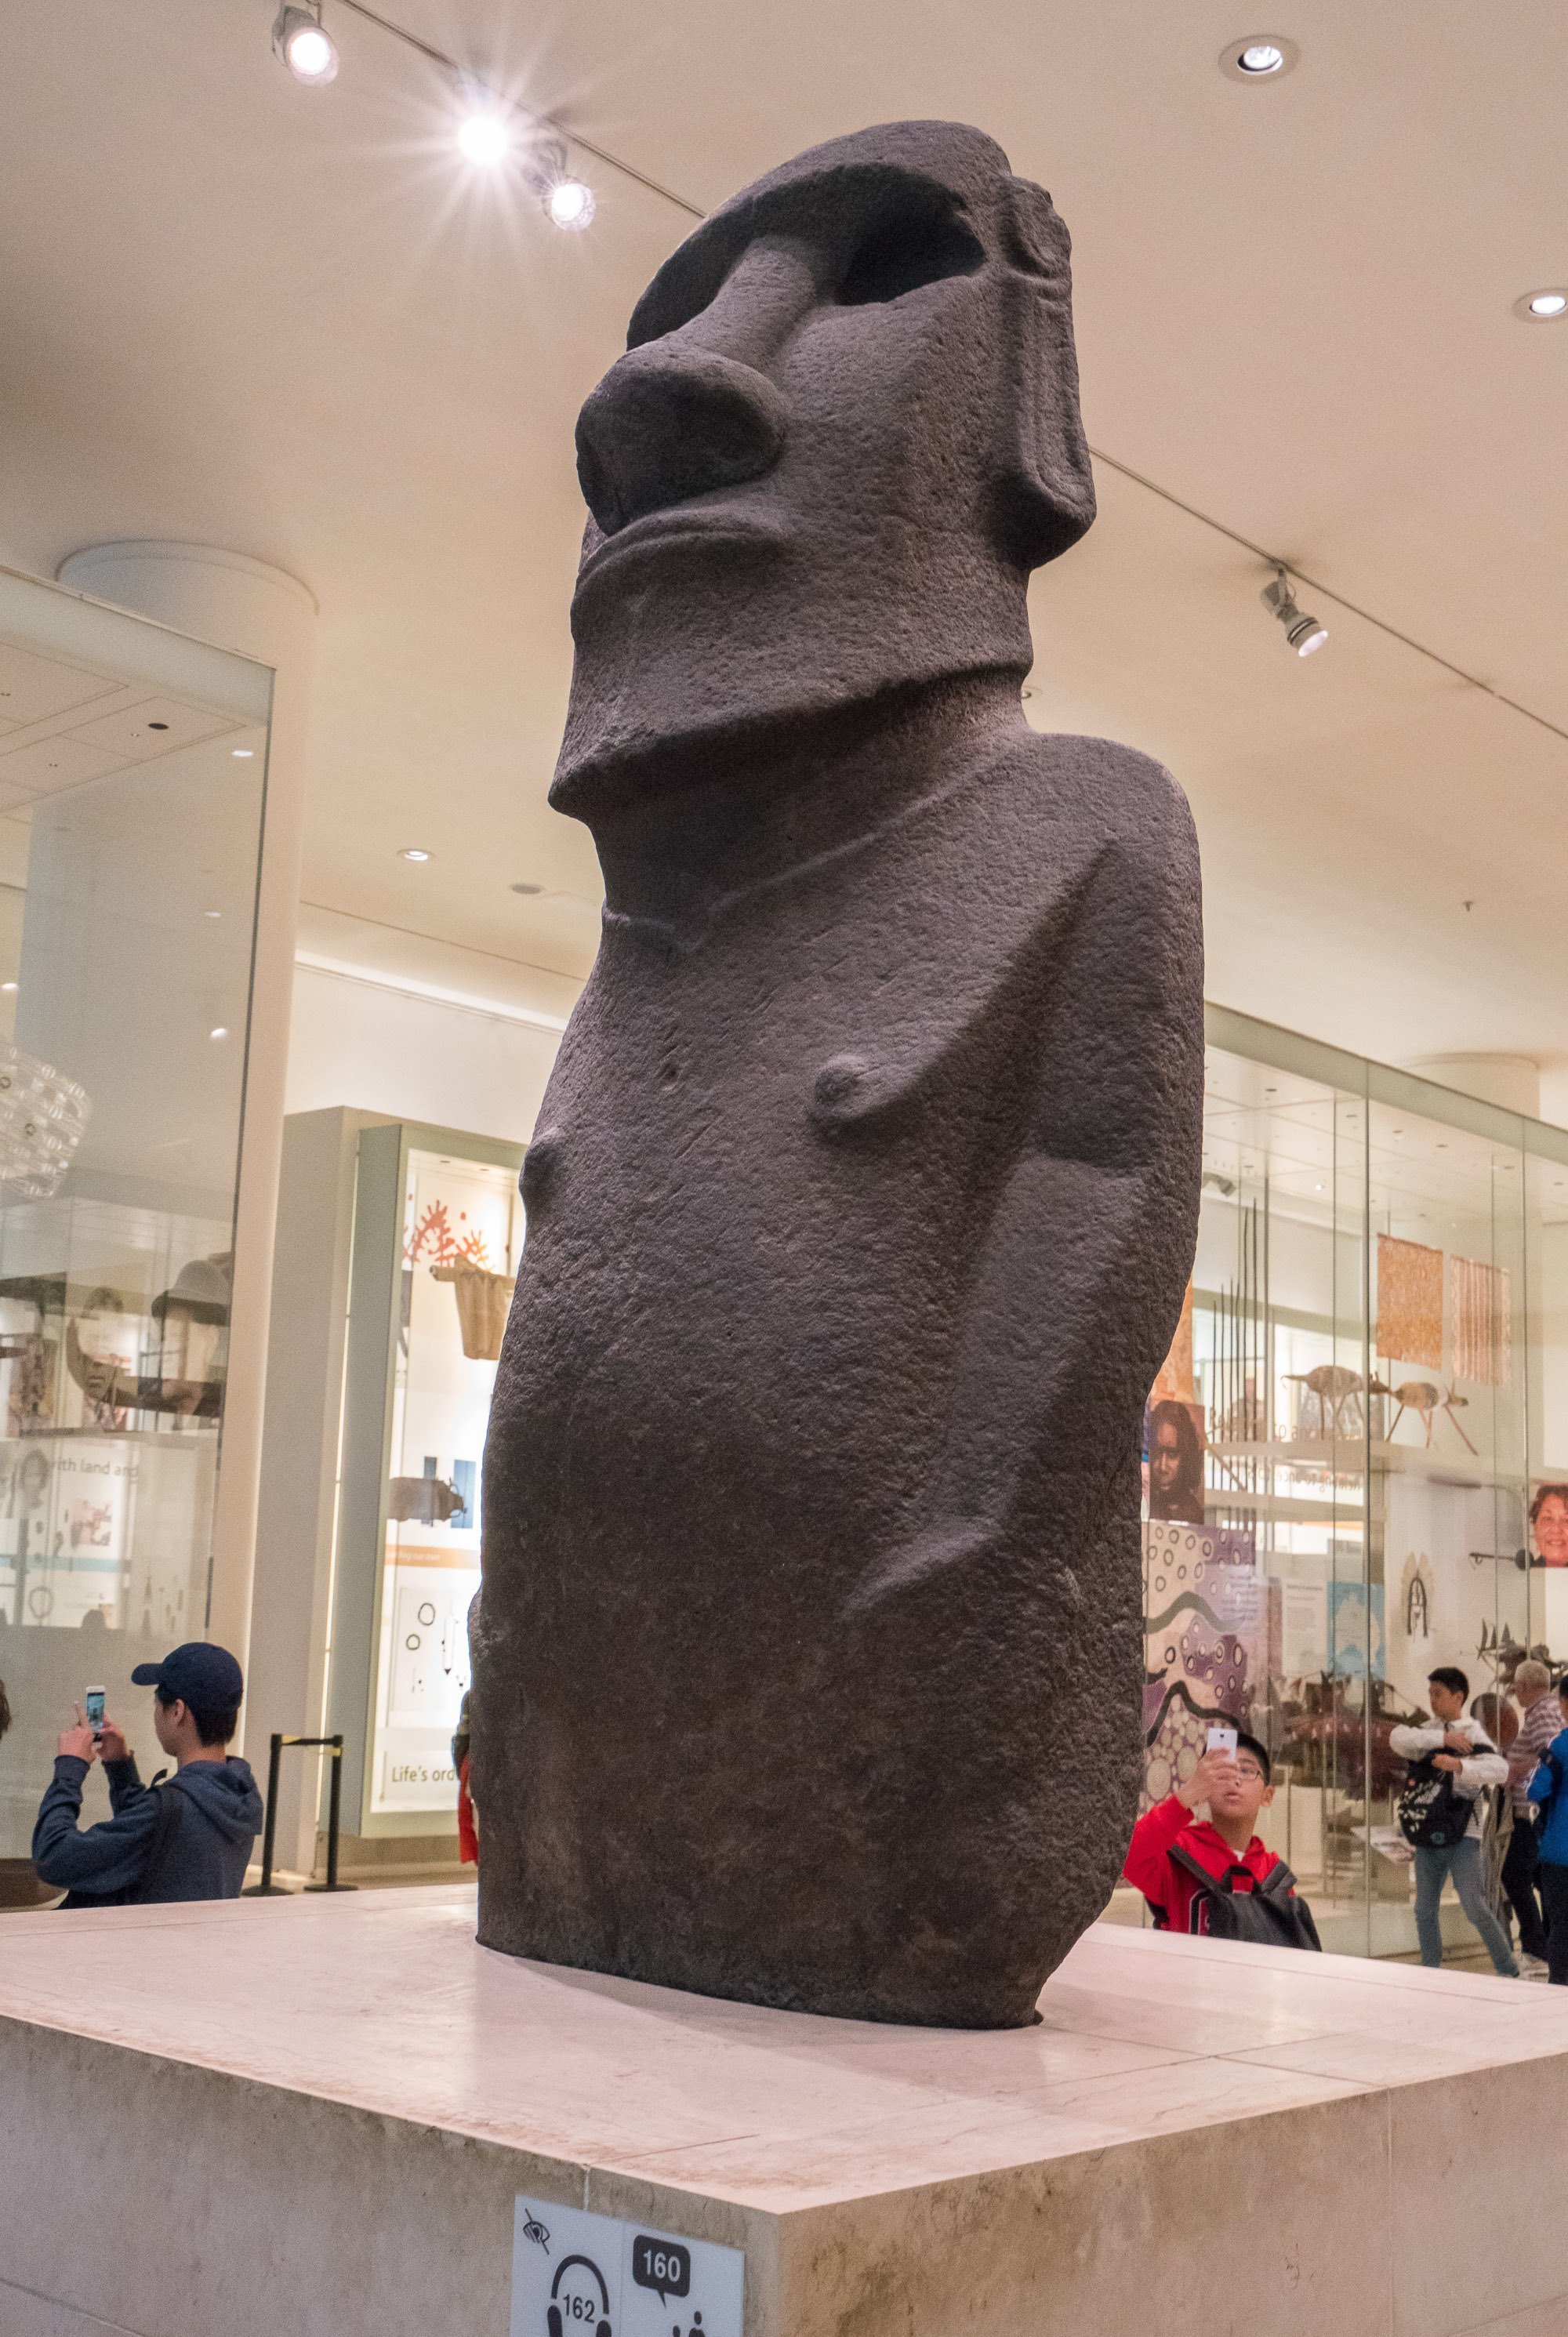 Kids love Hoa Hakananai'a (Easter Island moai) at the British Museum in London.